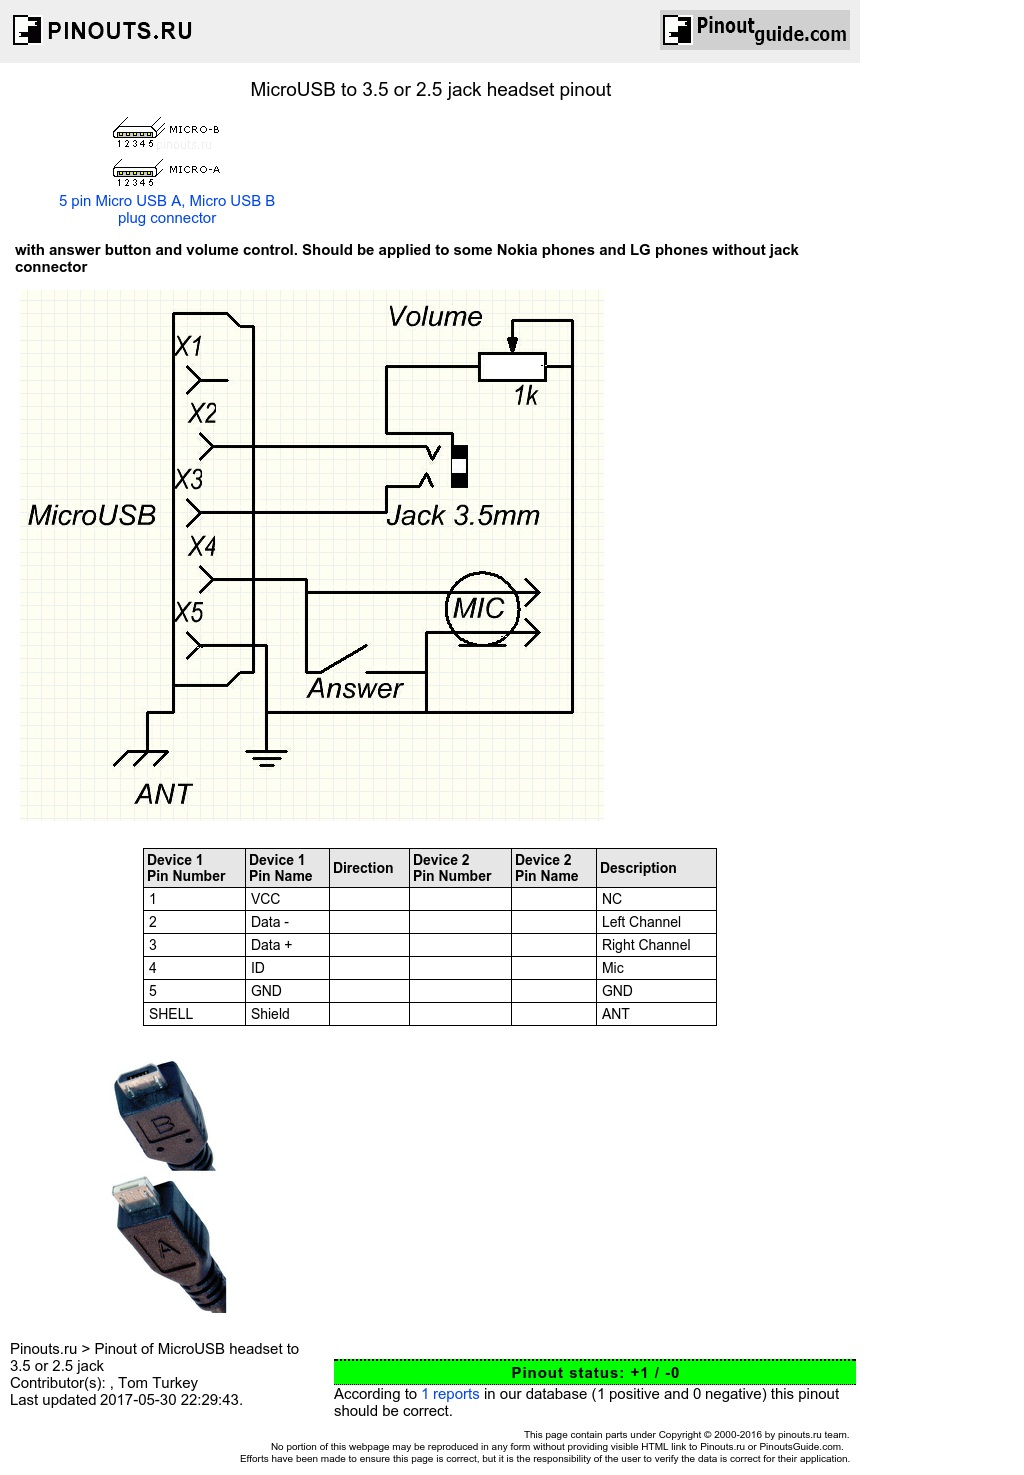 Microusb To 3.5 Or 2.5 Jack Headset Pinout Diagram @ Pinoutguide - Wiring Diagram Usb A, B